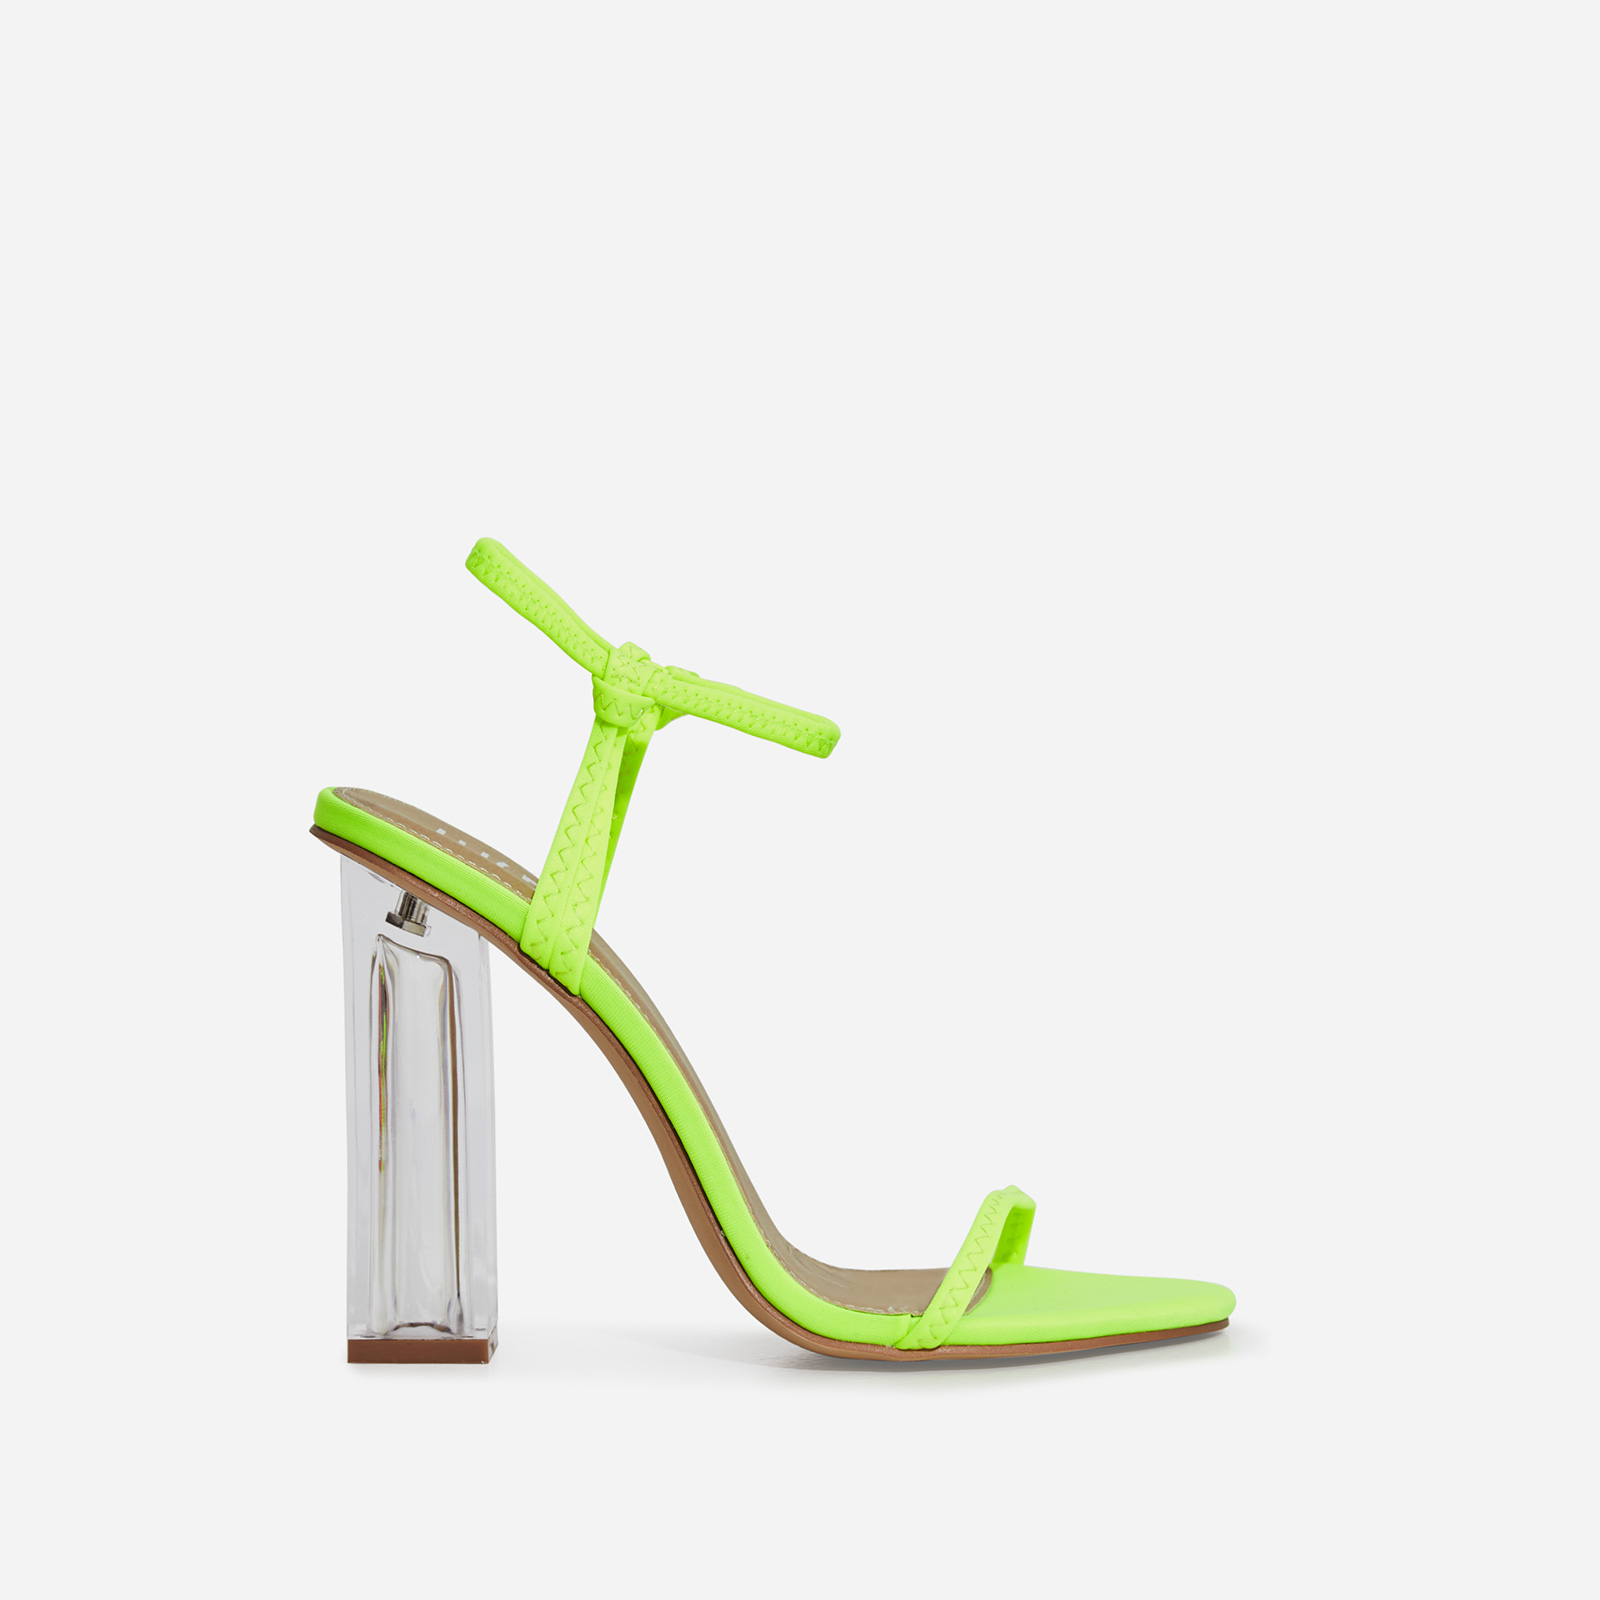 Lemon Barely There Perspex Block Heel In Lime Green Lycra